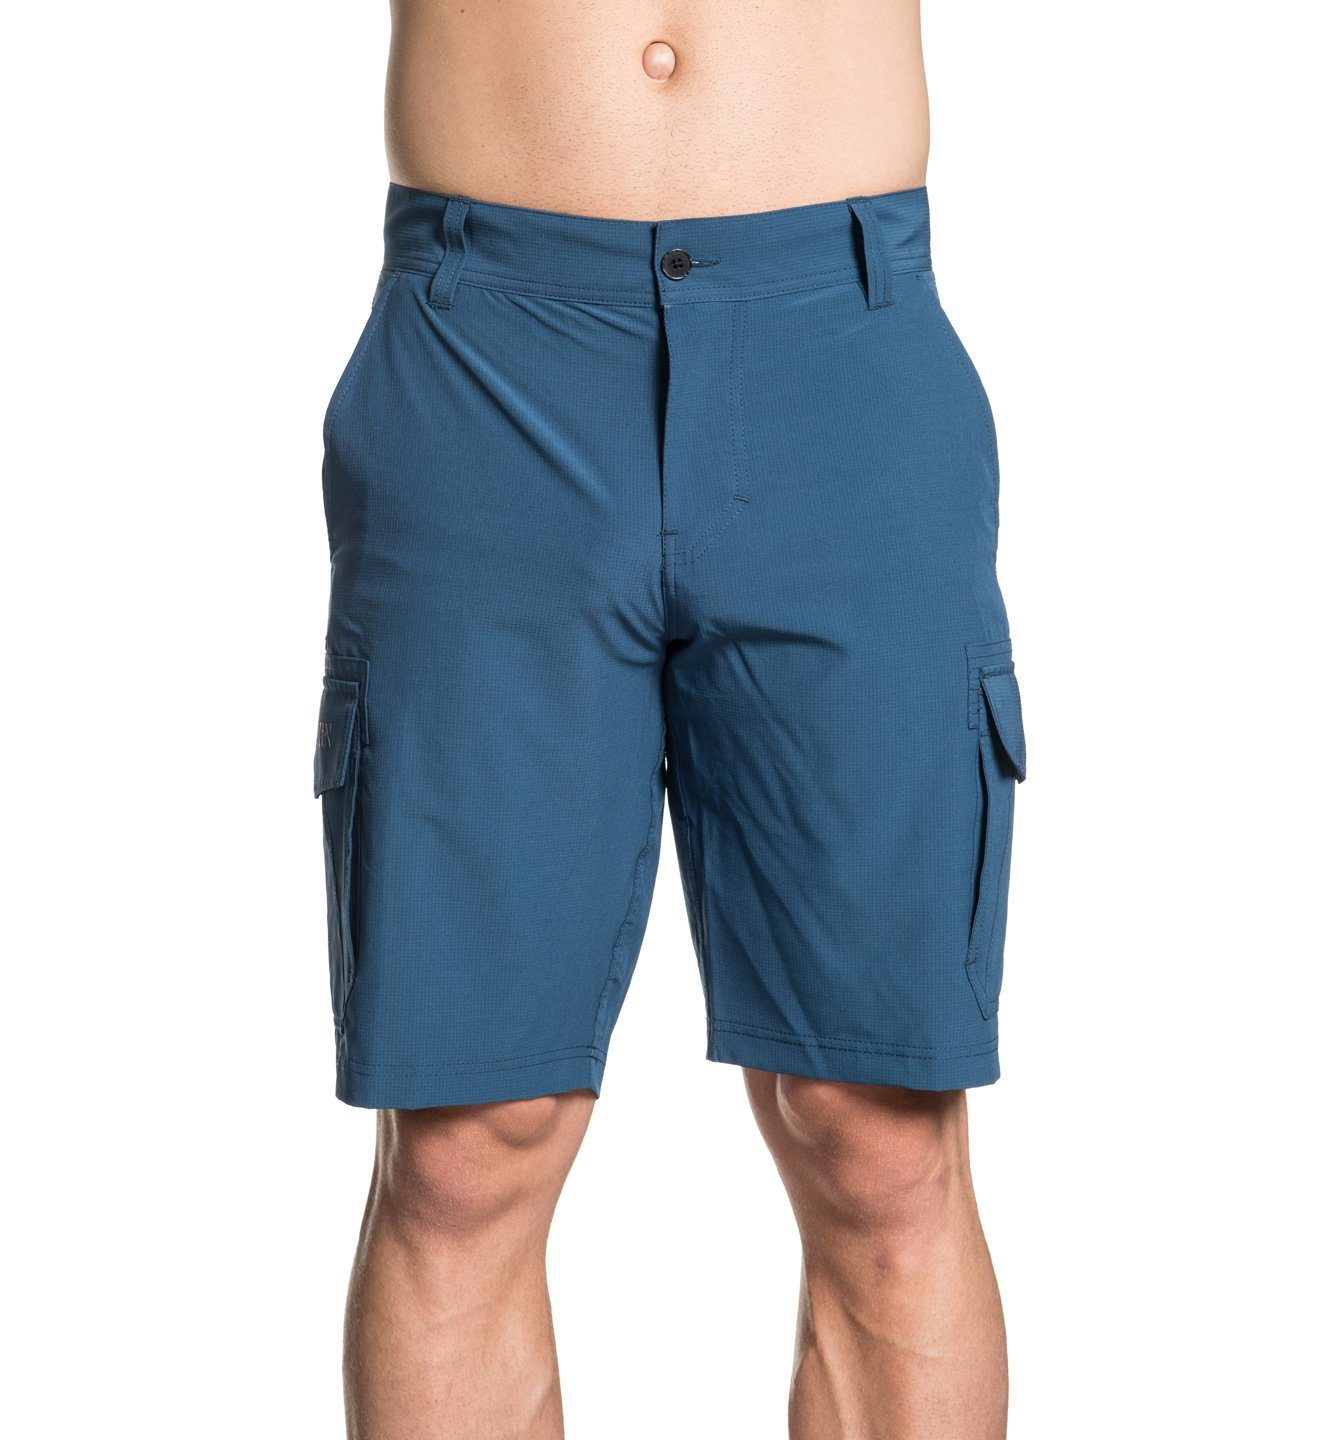 Cruise Shorts - Mens Shorts And Boardshorts - Affliction Clothing